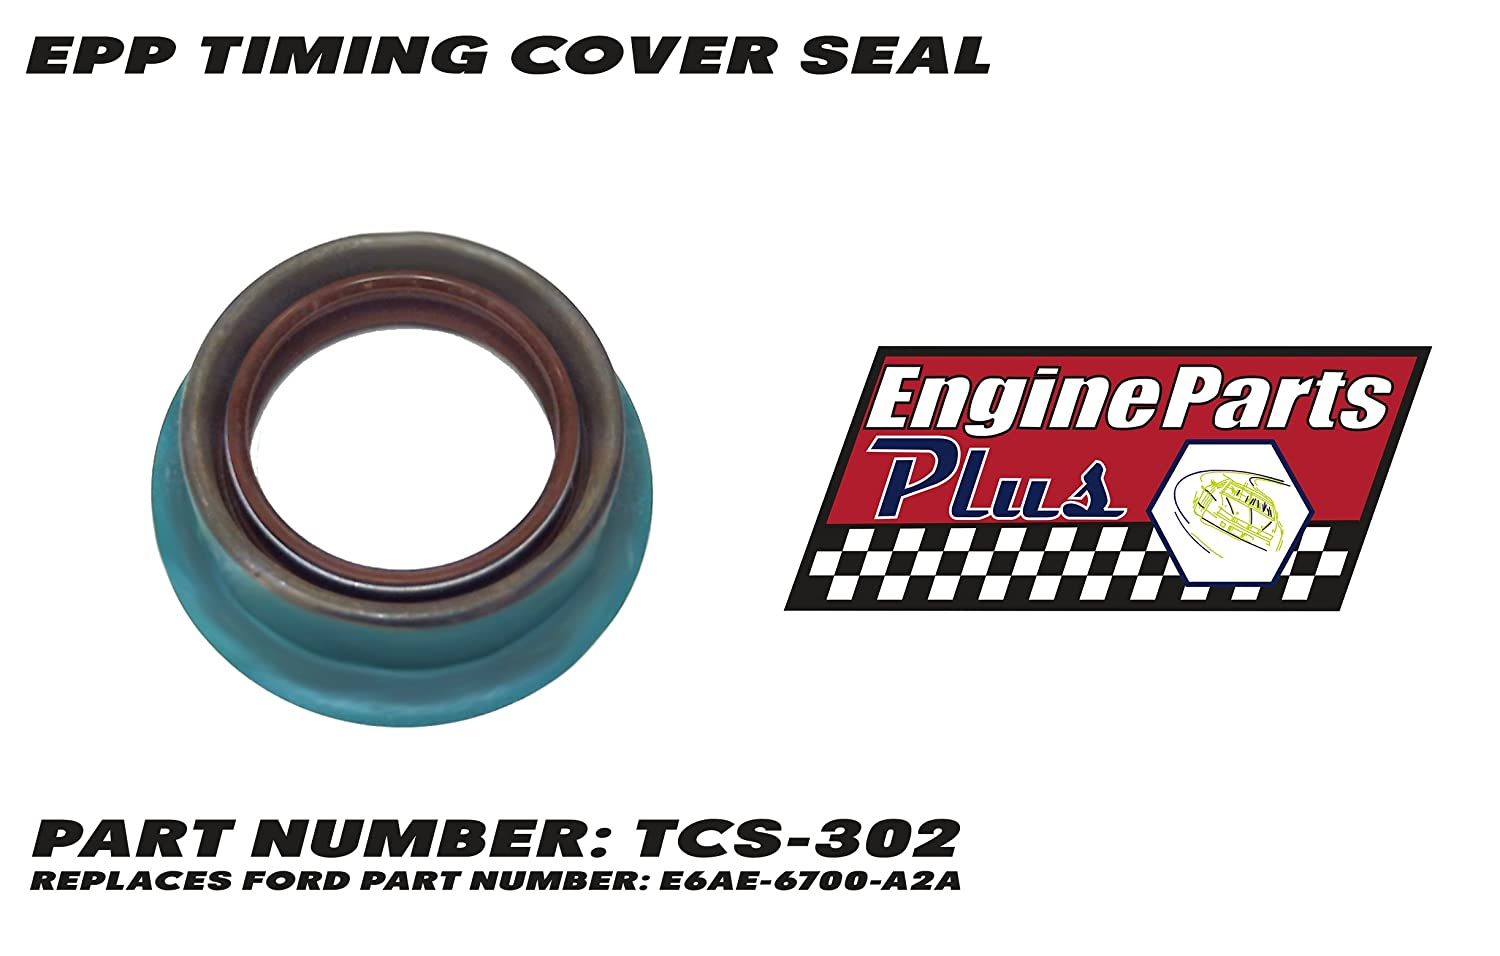 EPP TIMING COVER SEAL PART NUMBER: TCS-302 REPLACES FORD PART NUMBER: E6AE-6700-A2A ENGINE PARTS PLUS